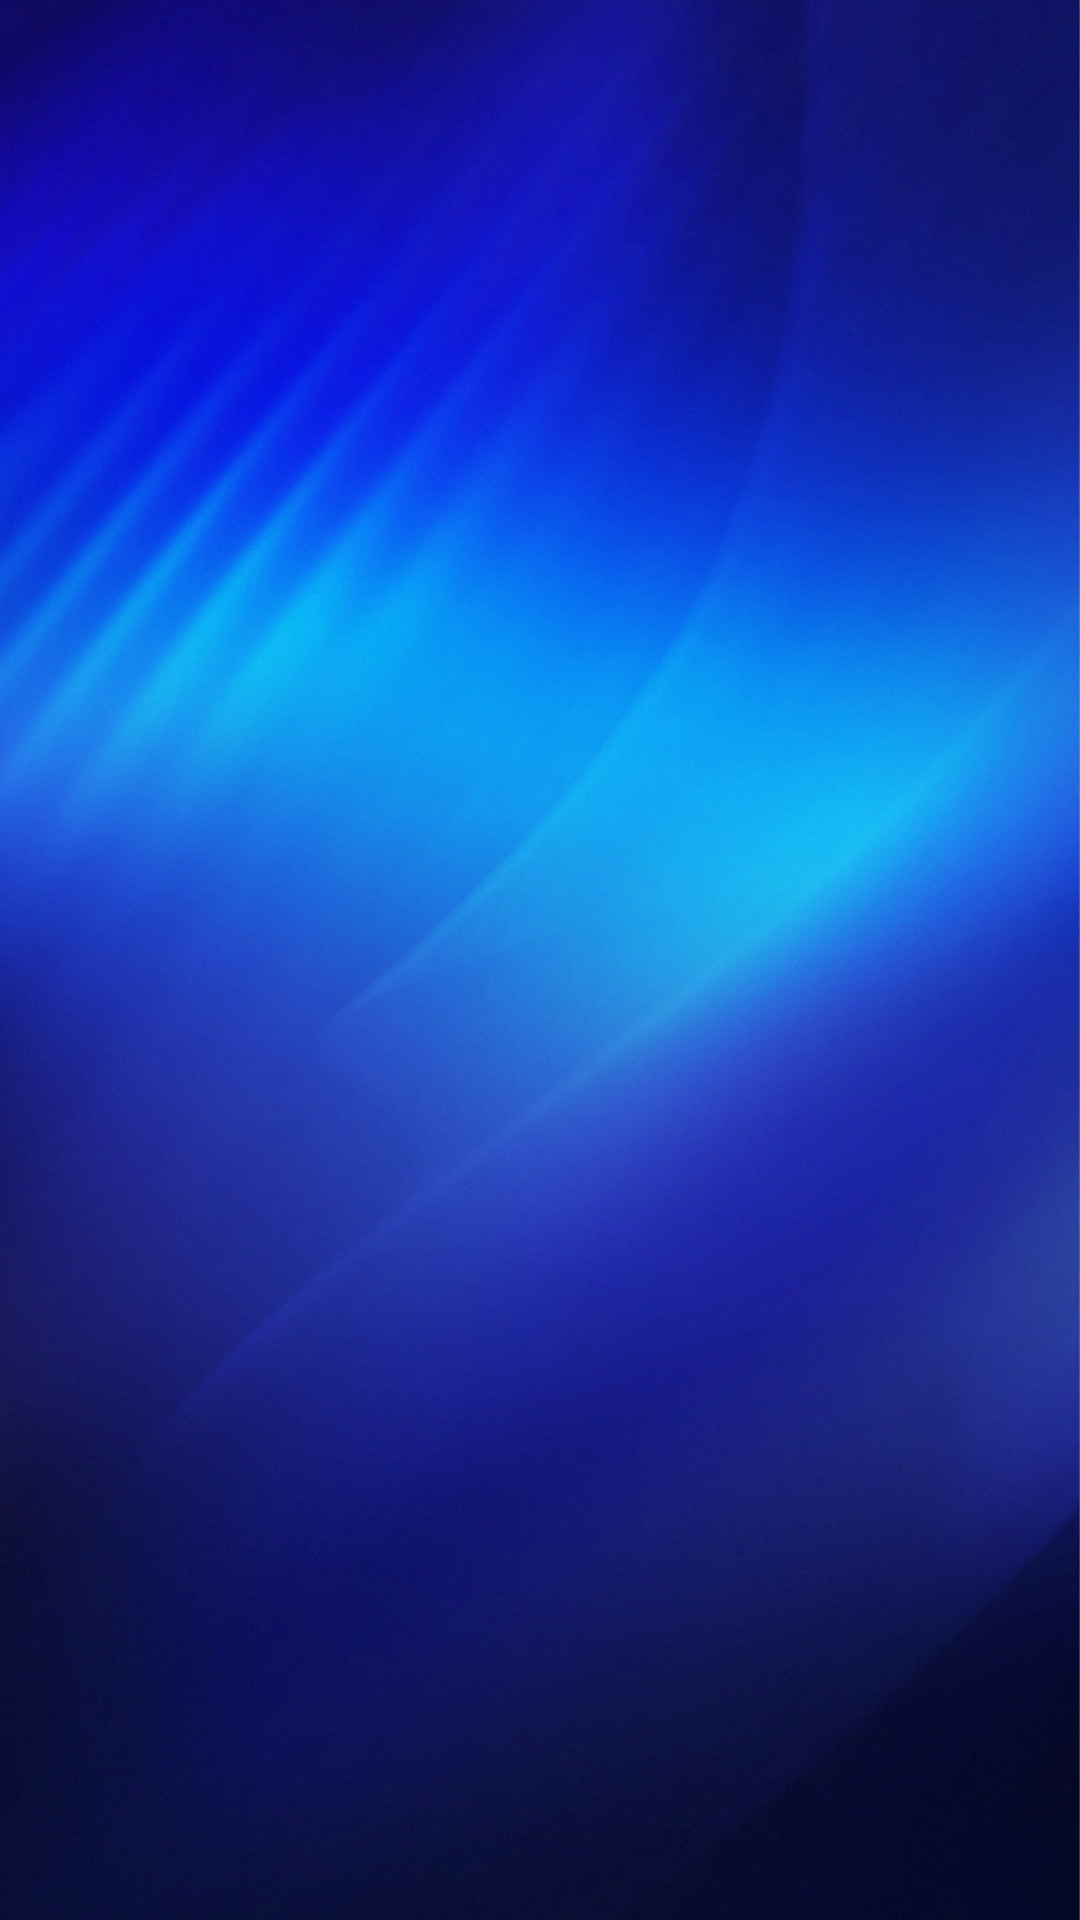 Abstract Blue Light Pattern iPhone 6 wallpaper